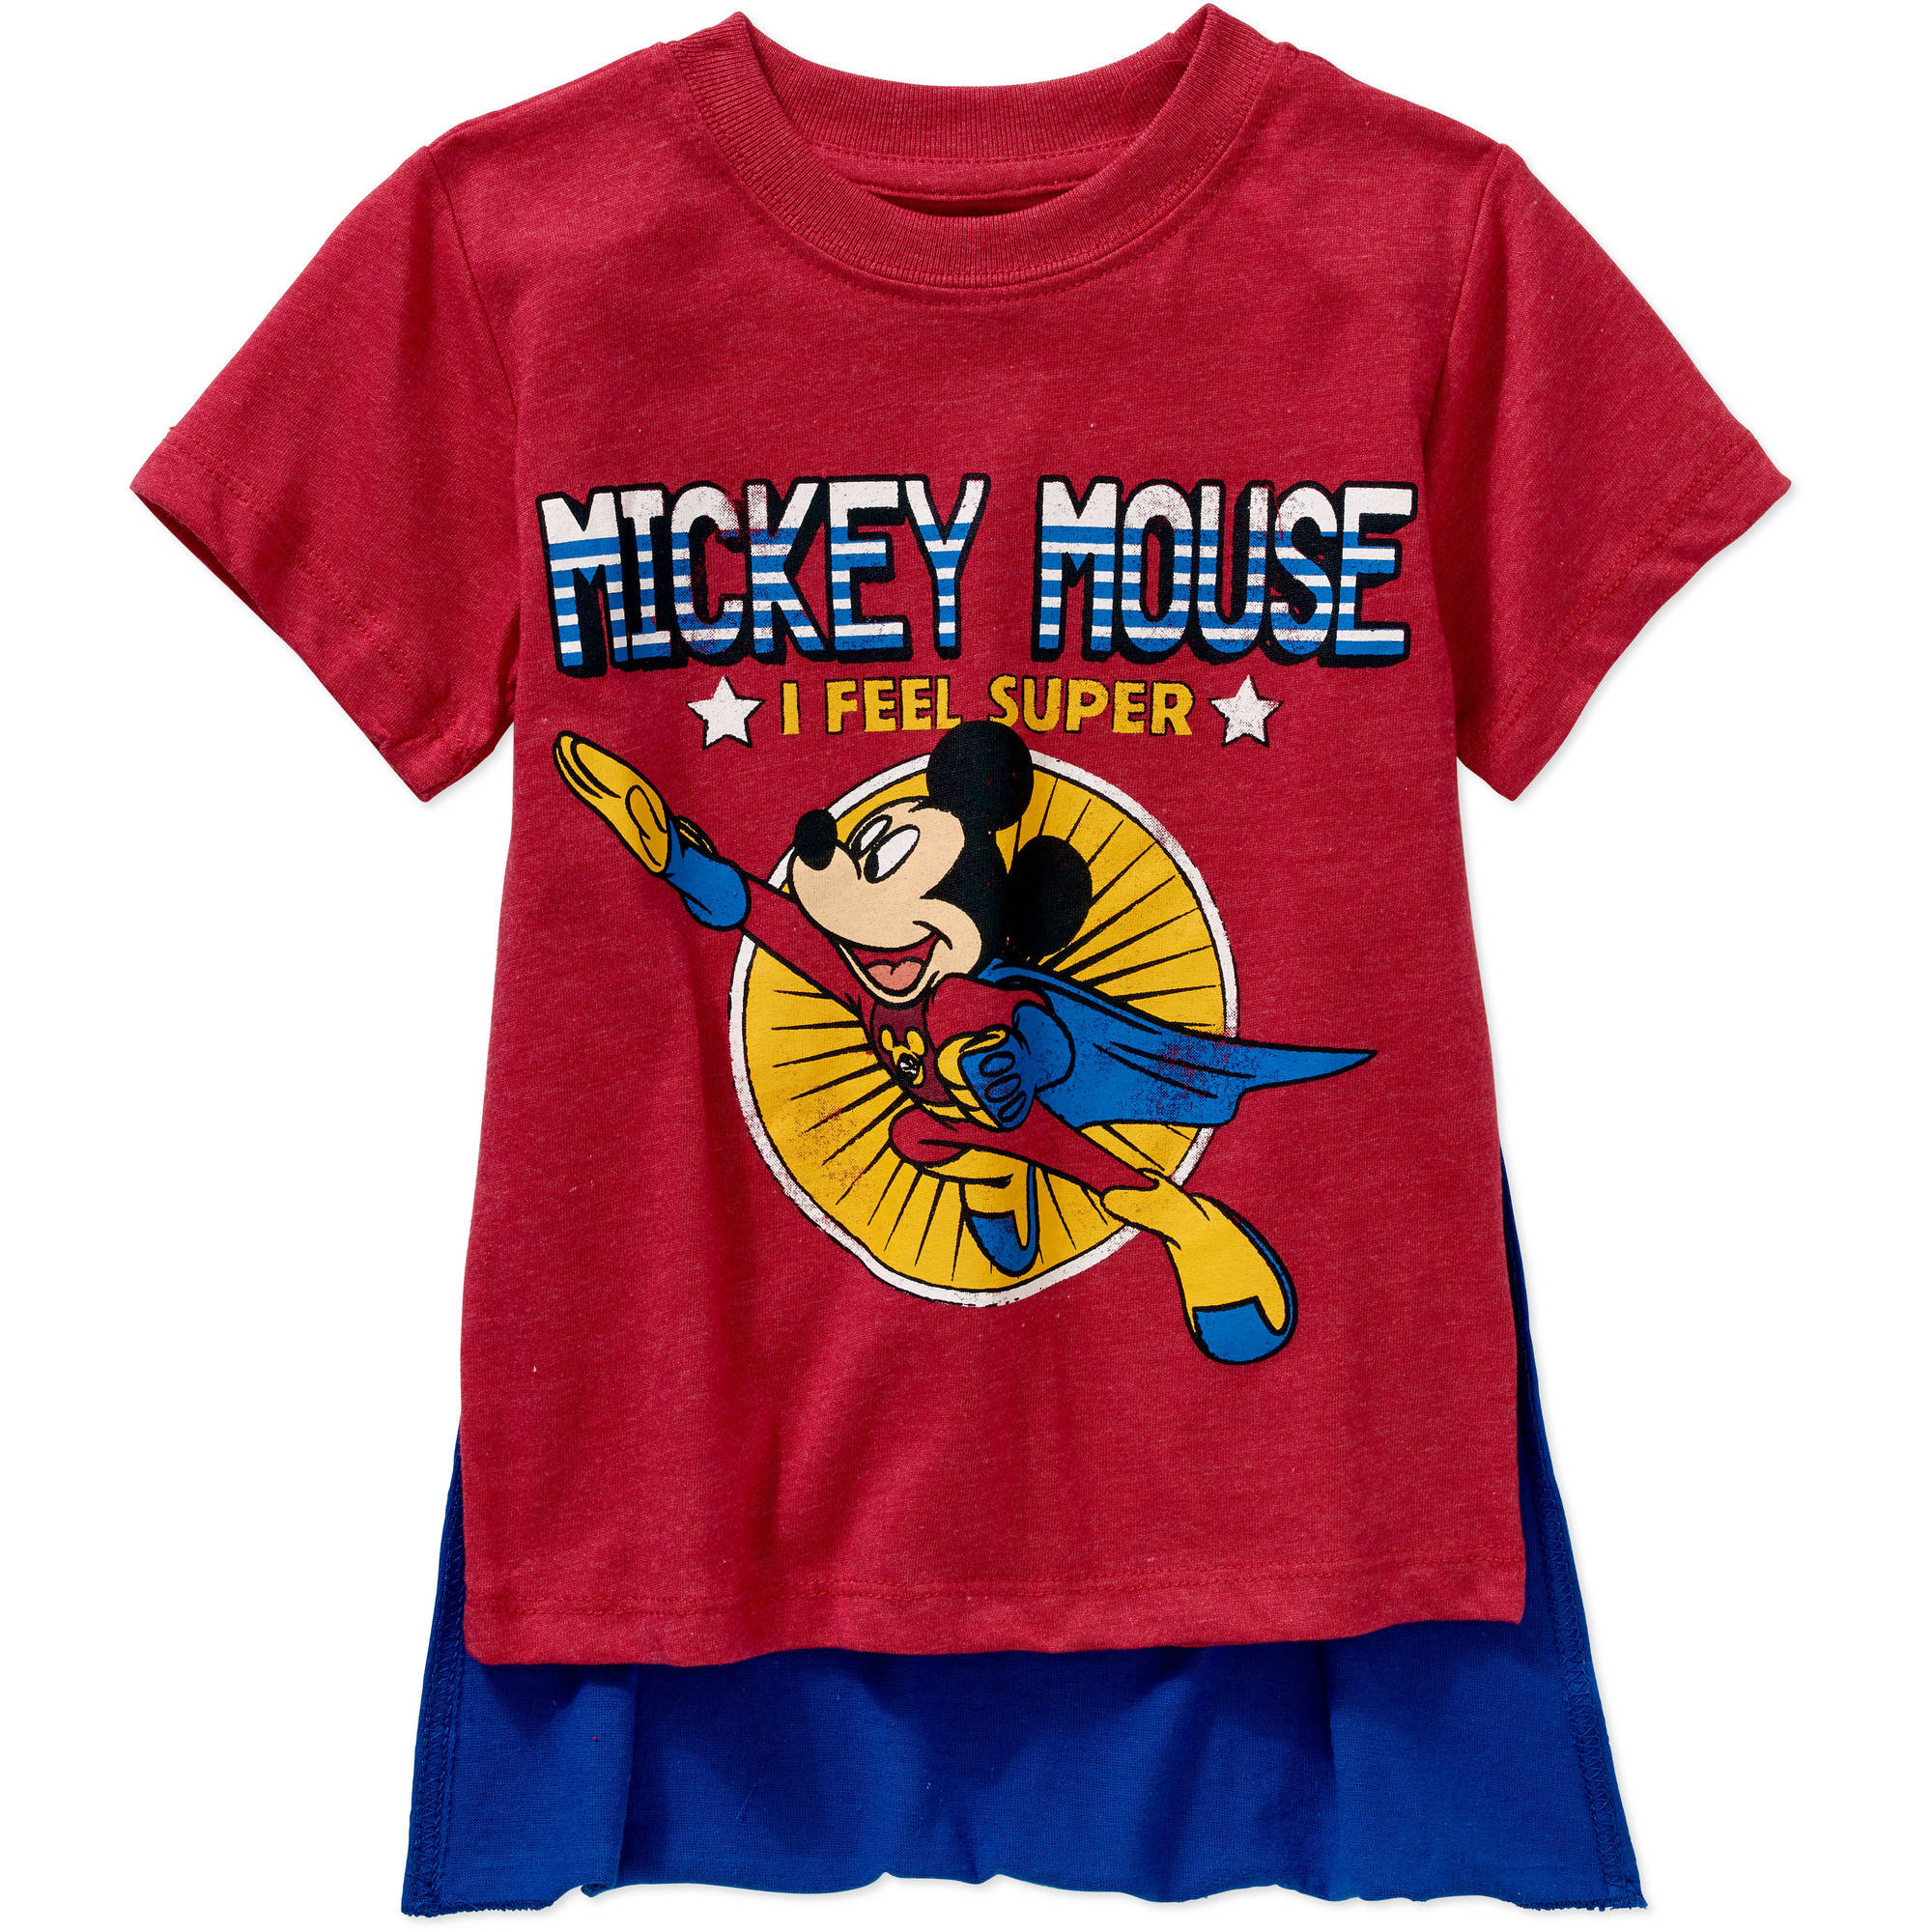 Disney Mickey Mouse Toddler Boy Short Sleeve Caped Tee